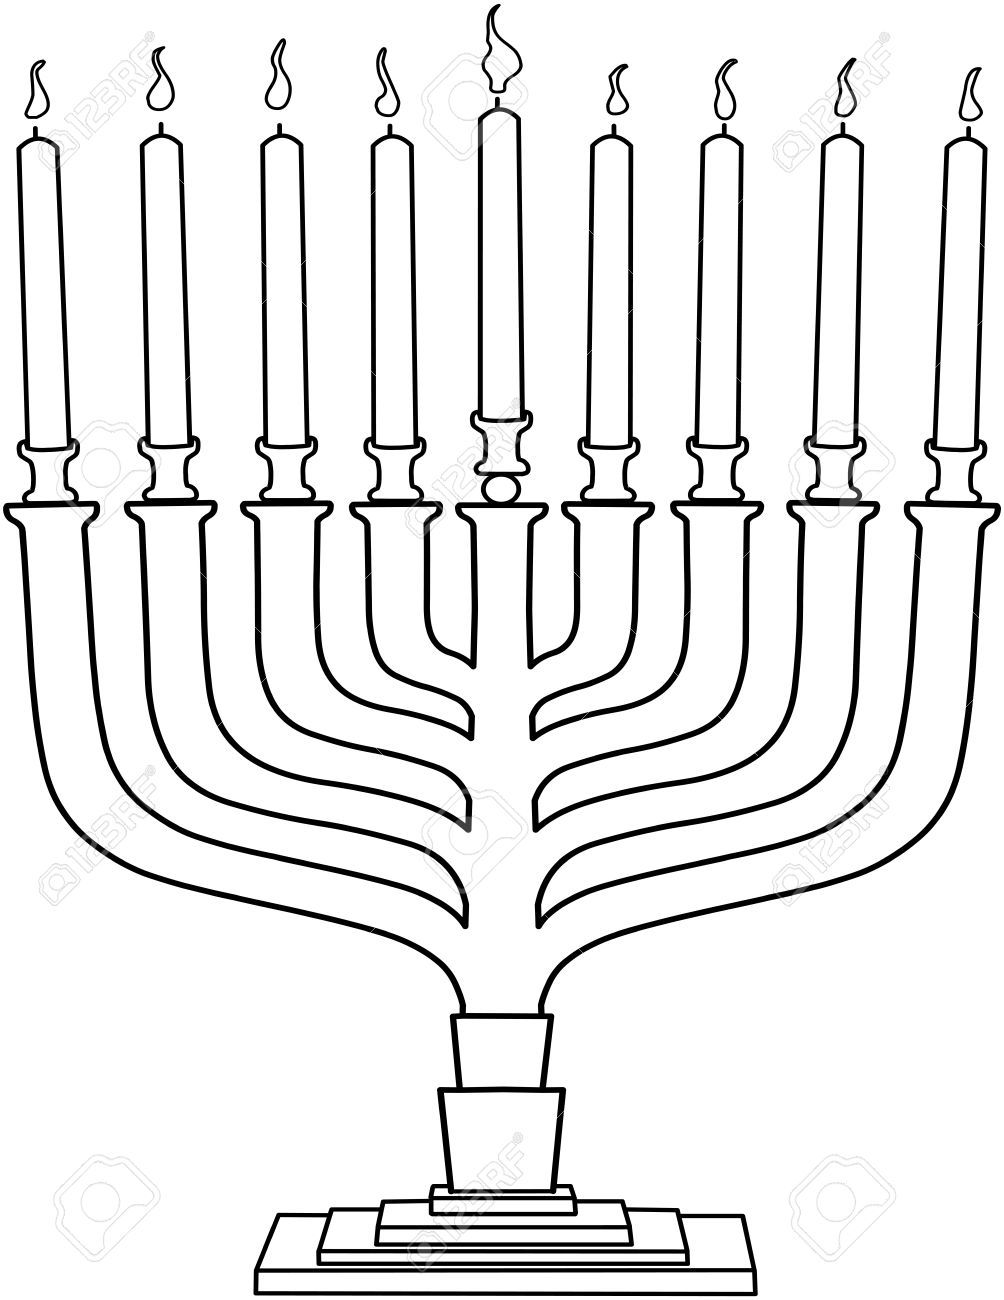 Worksheets Hanukkah Worksheets vector illustration coloring page of hanukkiah with candles for the jewish holiday hanukkah stock vector